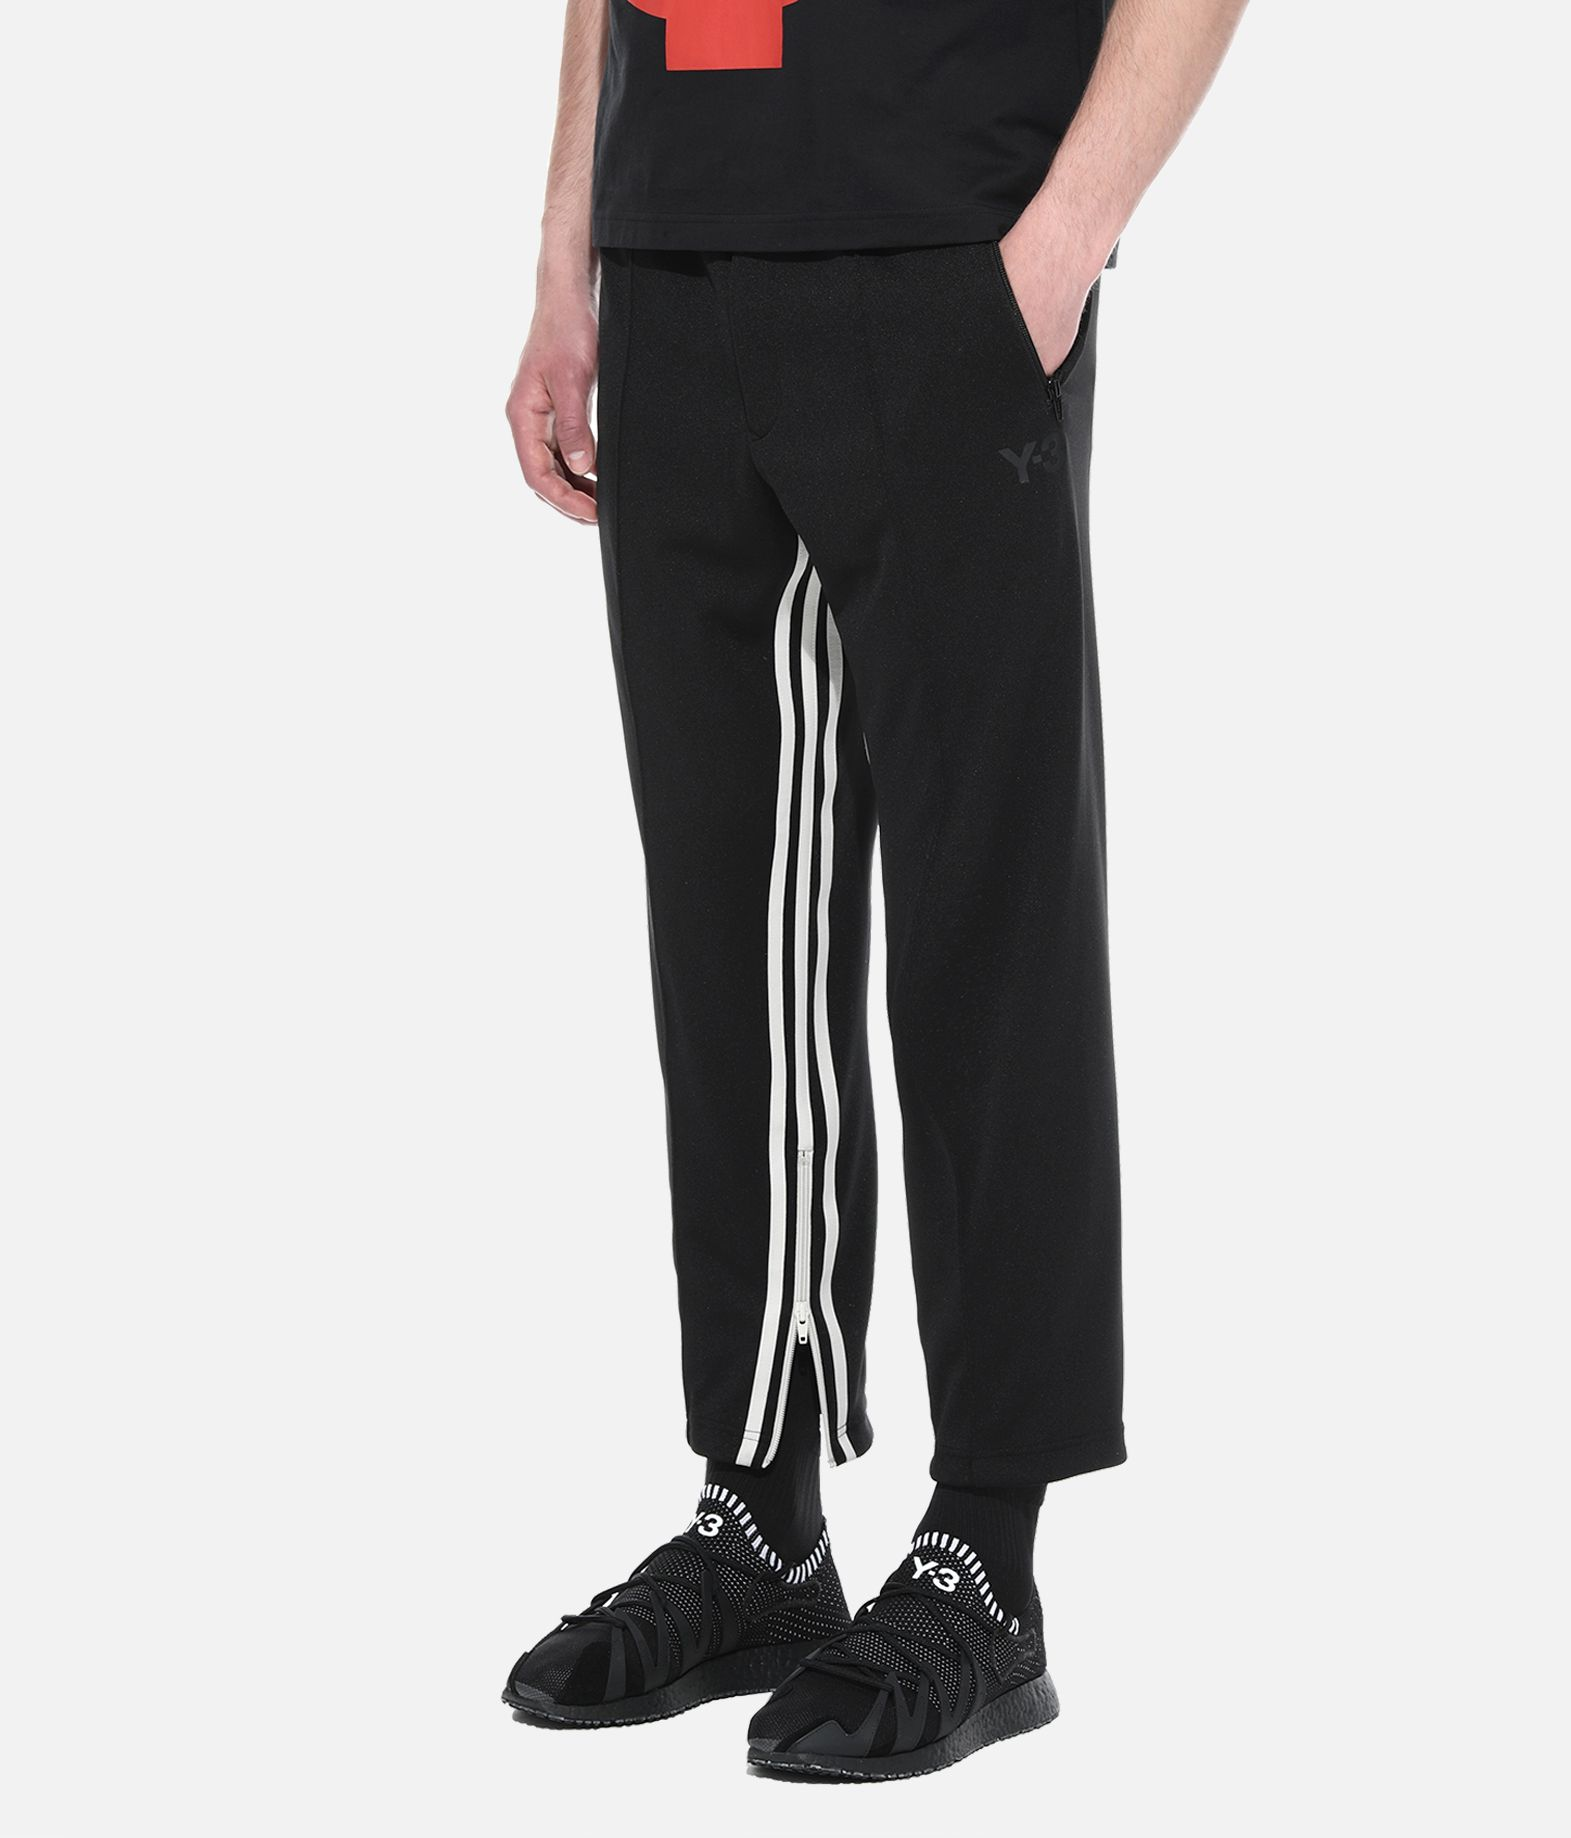 Y-3 Y-3 3-Stripes Cropped Track Pants Tracksuit bottoms Man e